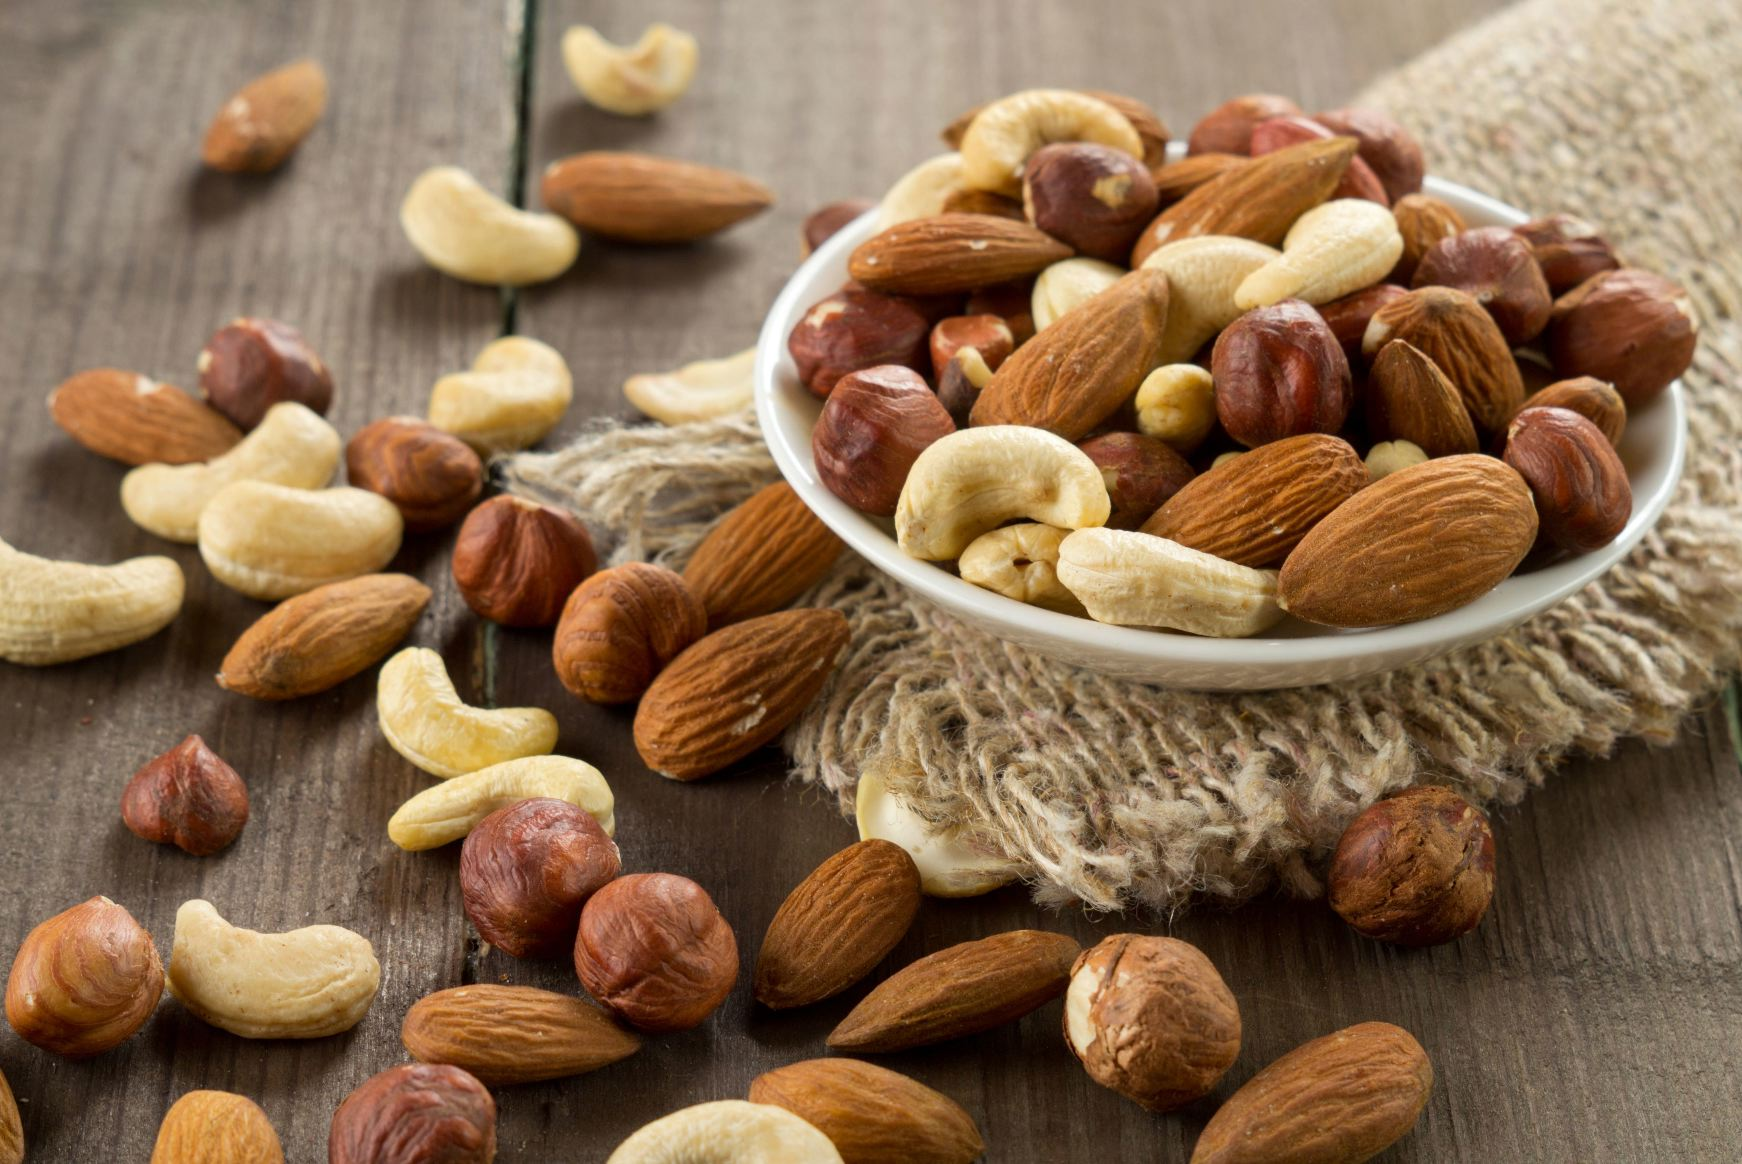 Tree Nuts May Reduce Risk of Heart Disease